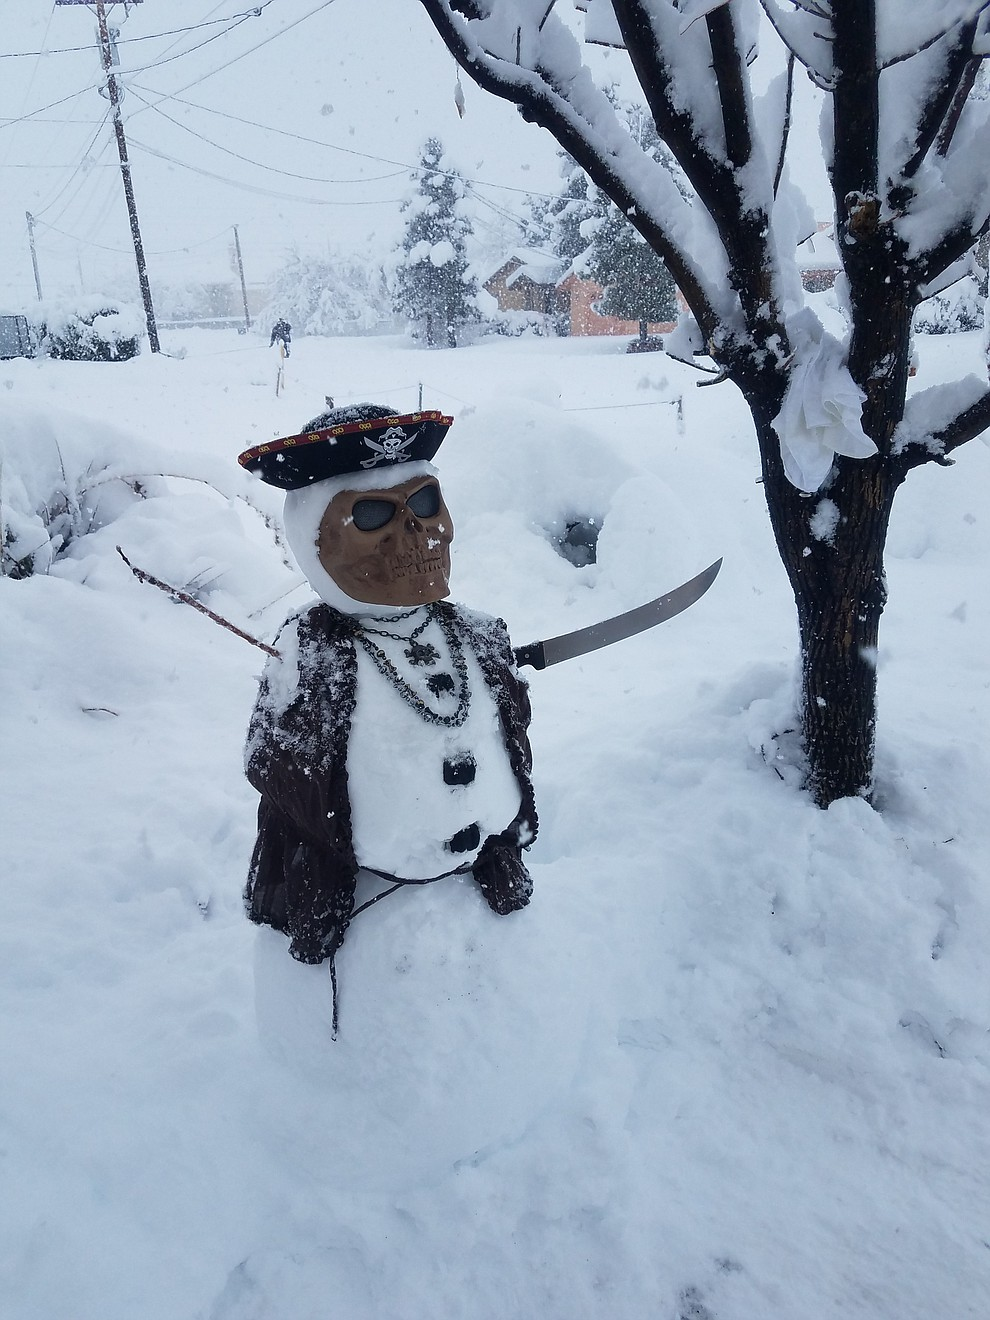 A pirate made an appearance in the snow. (Photo submitted by Lindsay Rankin)